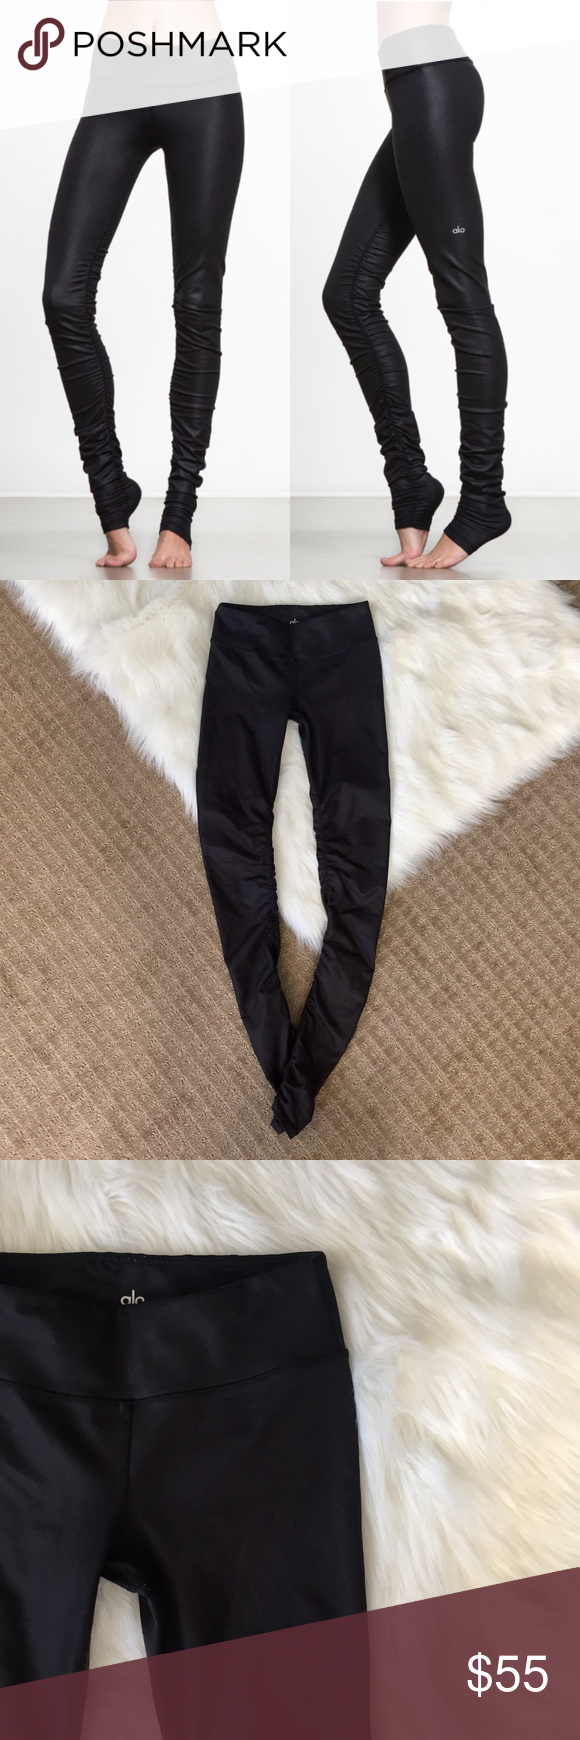 2a83a55840 ALO Yoga Idol Ruched Legging Black Glossy! Pull it over the heel or scrunch  it